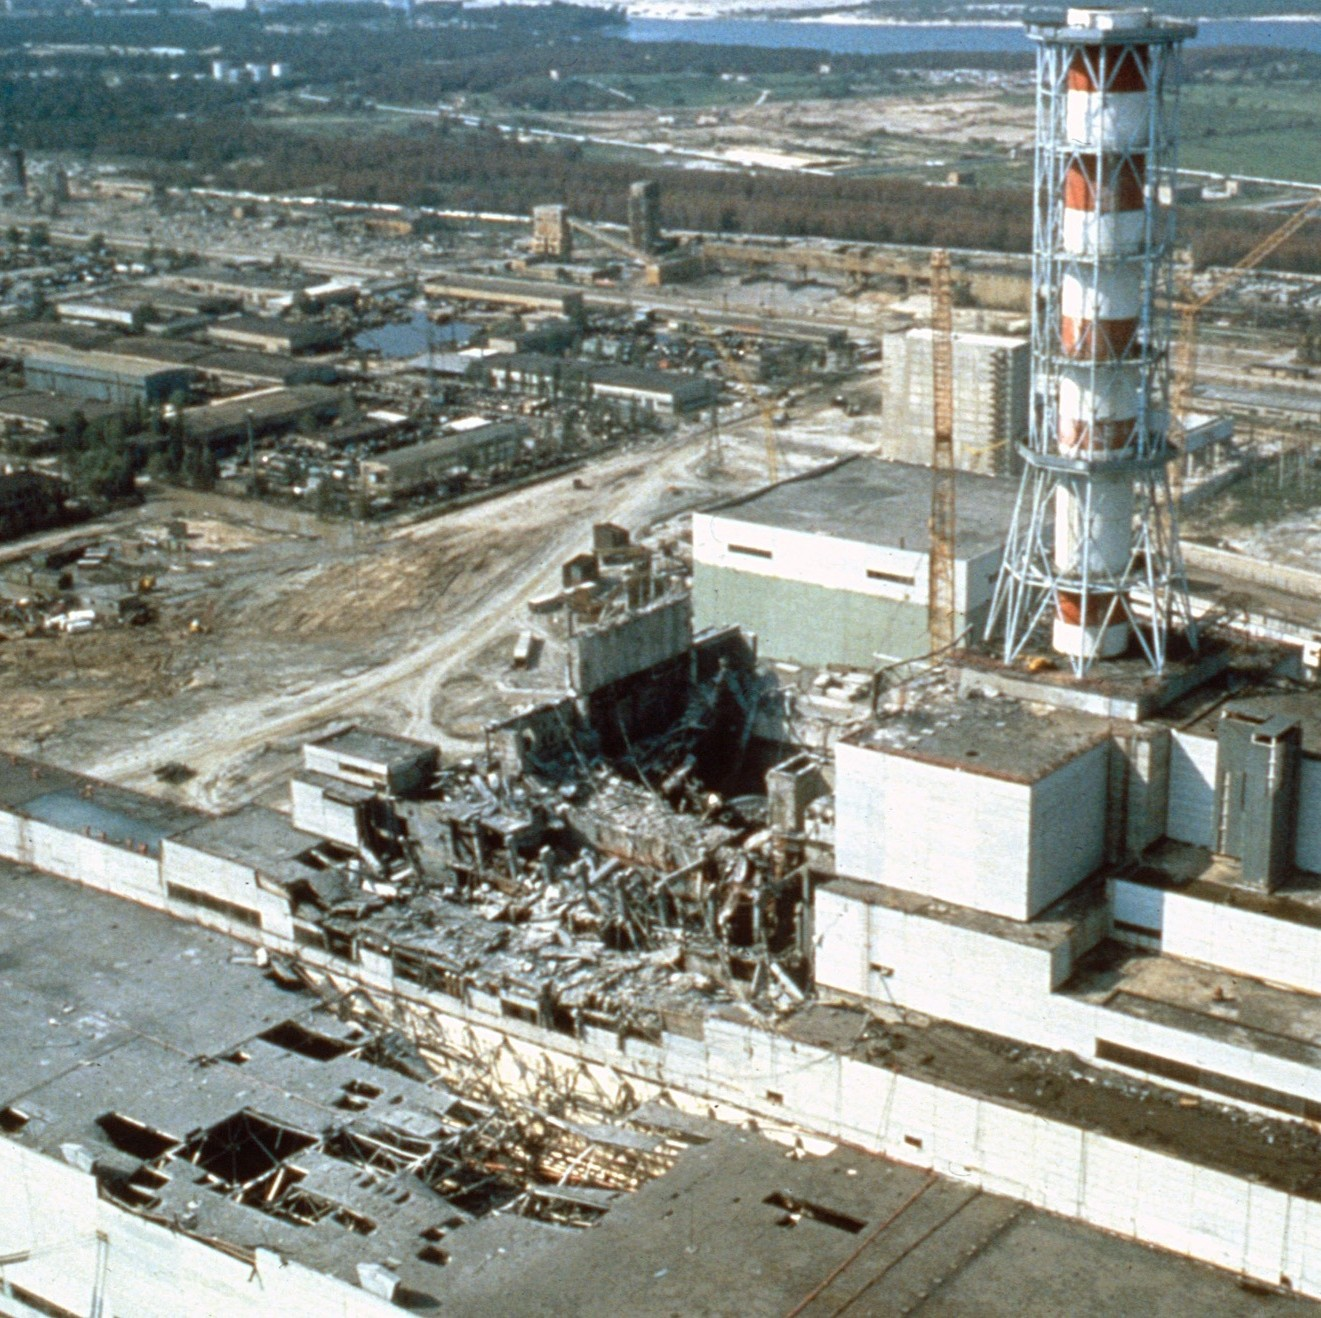 the nuclear accident in chernobyl essay Chernobyl disaster 26 april, 1986 bharat bhushan | intro to nuclear engineering | june 20, 2013 chernobyl disaster, a man made catastrophe, is the world's worst nuclear accident till date the chernobyl nuclear power plant, located in ukraine, had four rbmk-1000 reactors in service and two under construction.